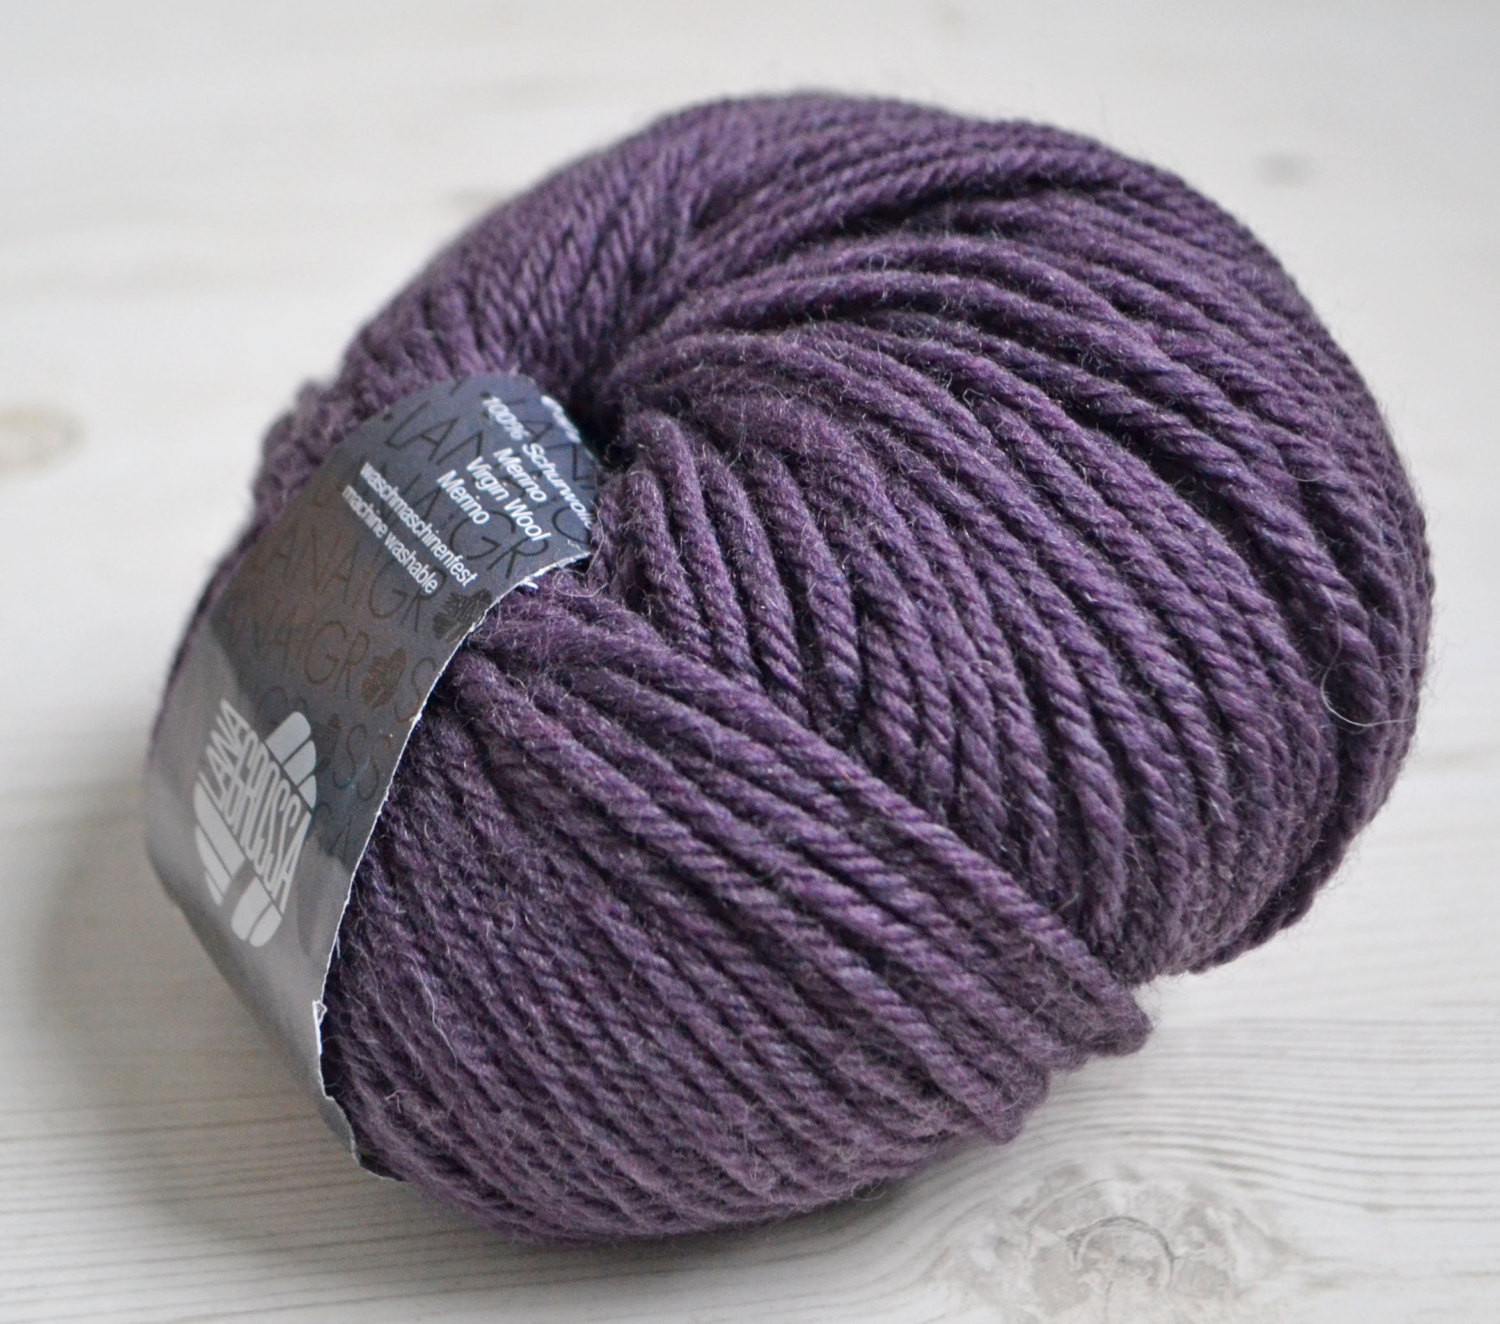 Knitting yarn Destash yarn purple yarn Aran weight Y157